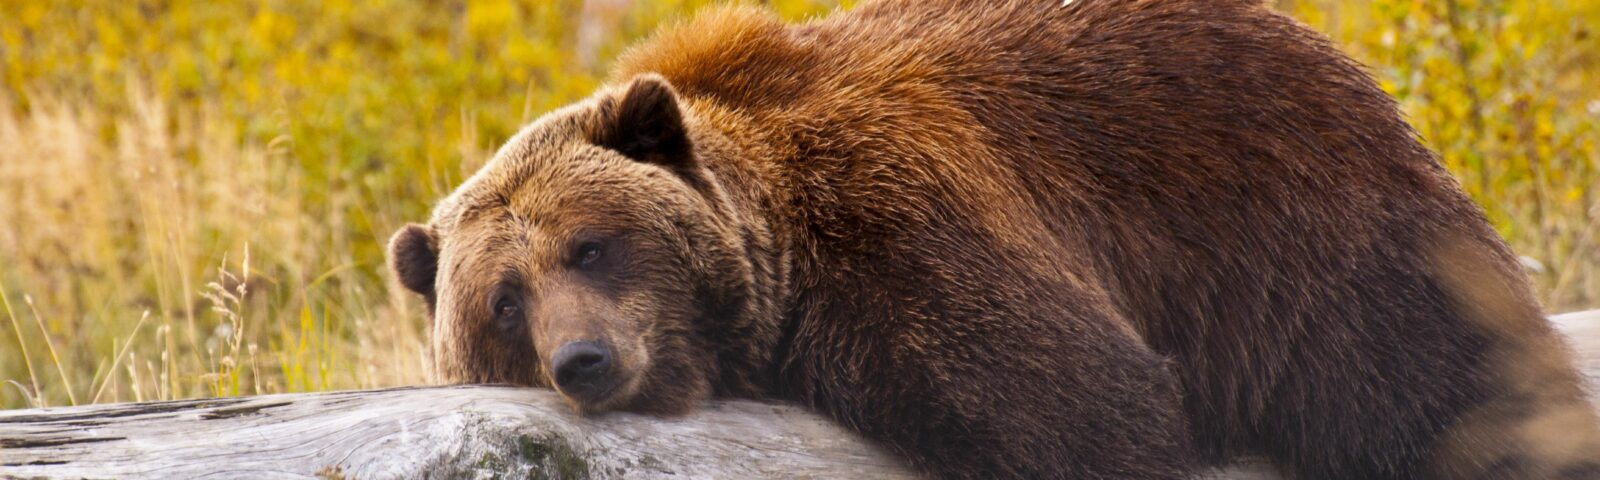 On Bears, Loans and Employment